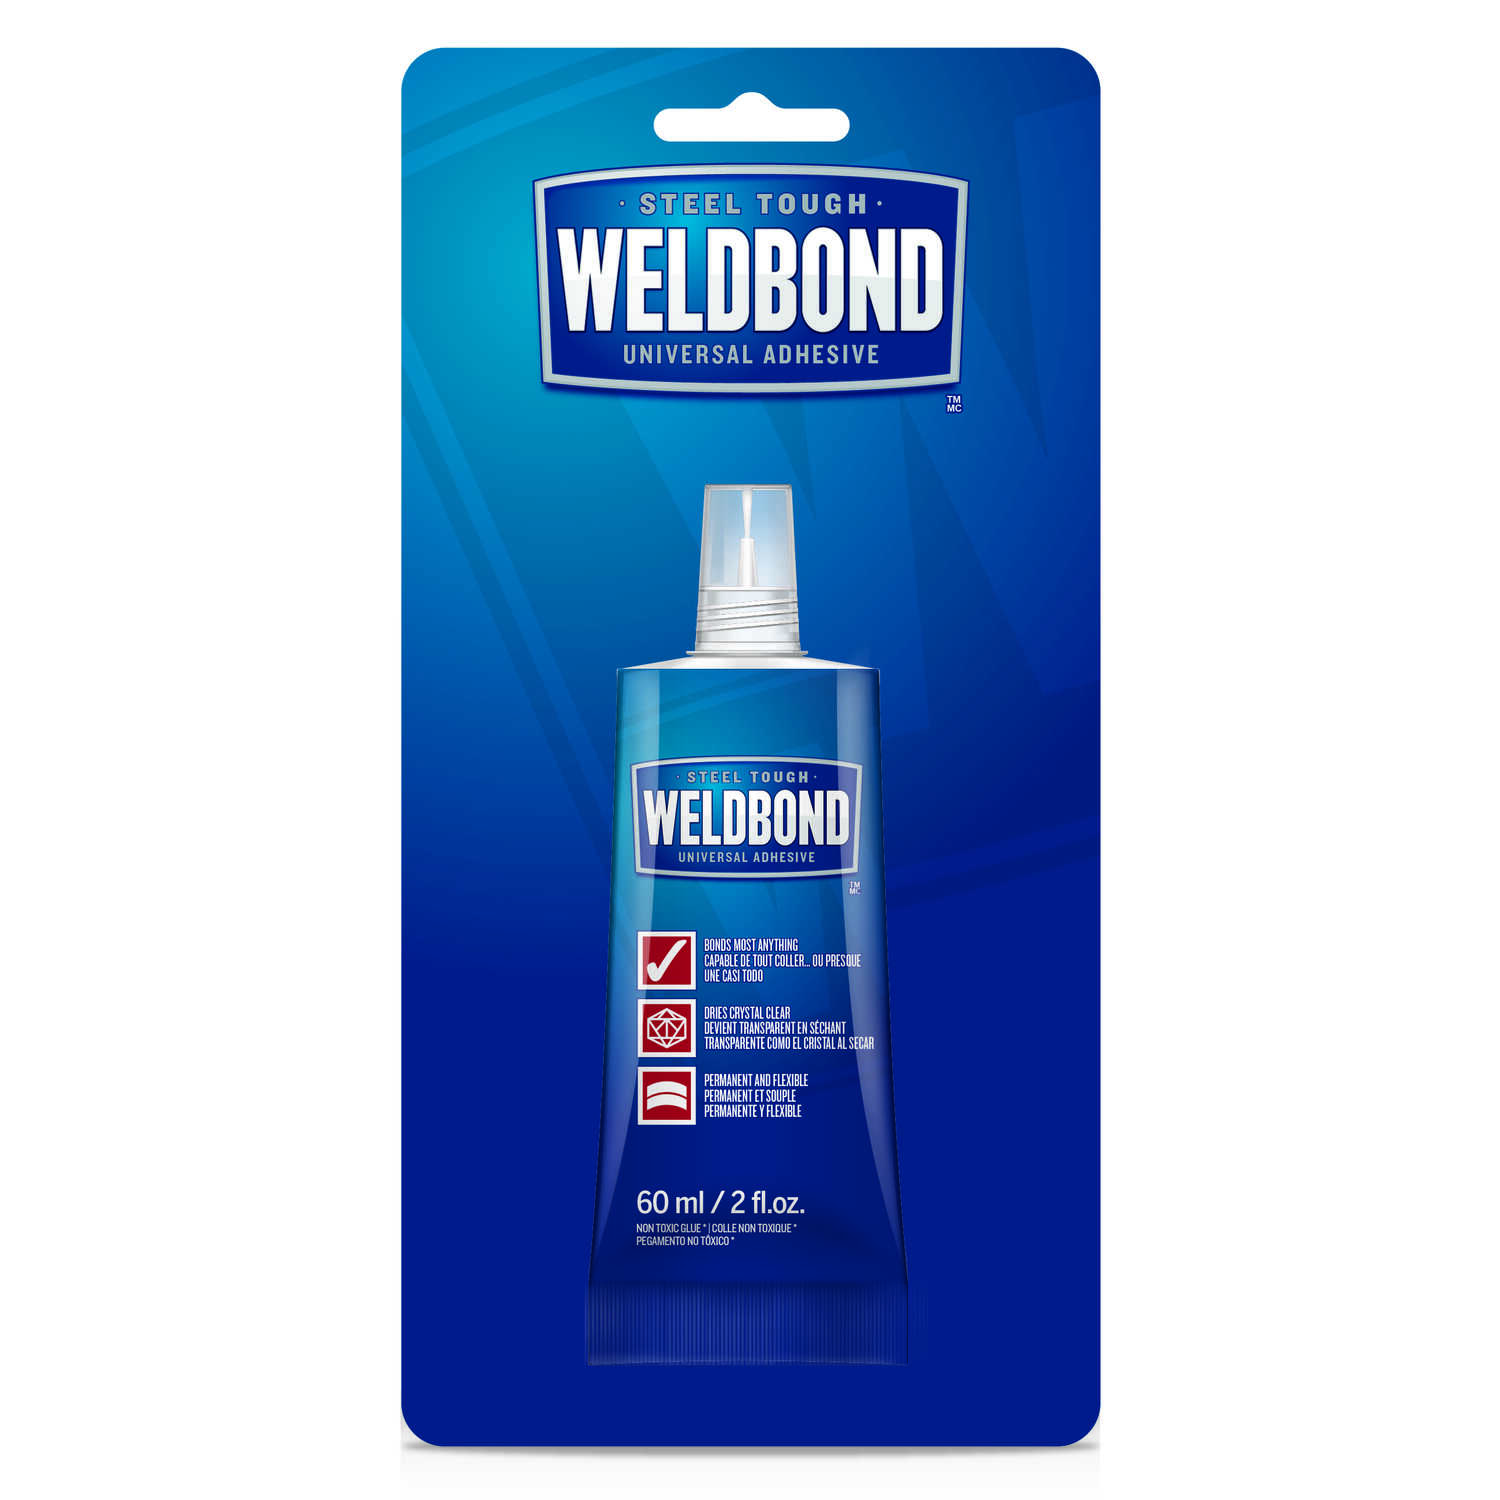 Weldbond  High Strength  Polyvinyl acetate homopolymer  All Purpose Adhesive  2 oz.